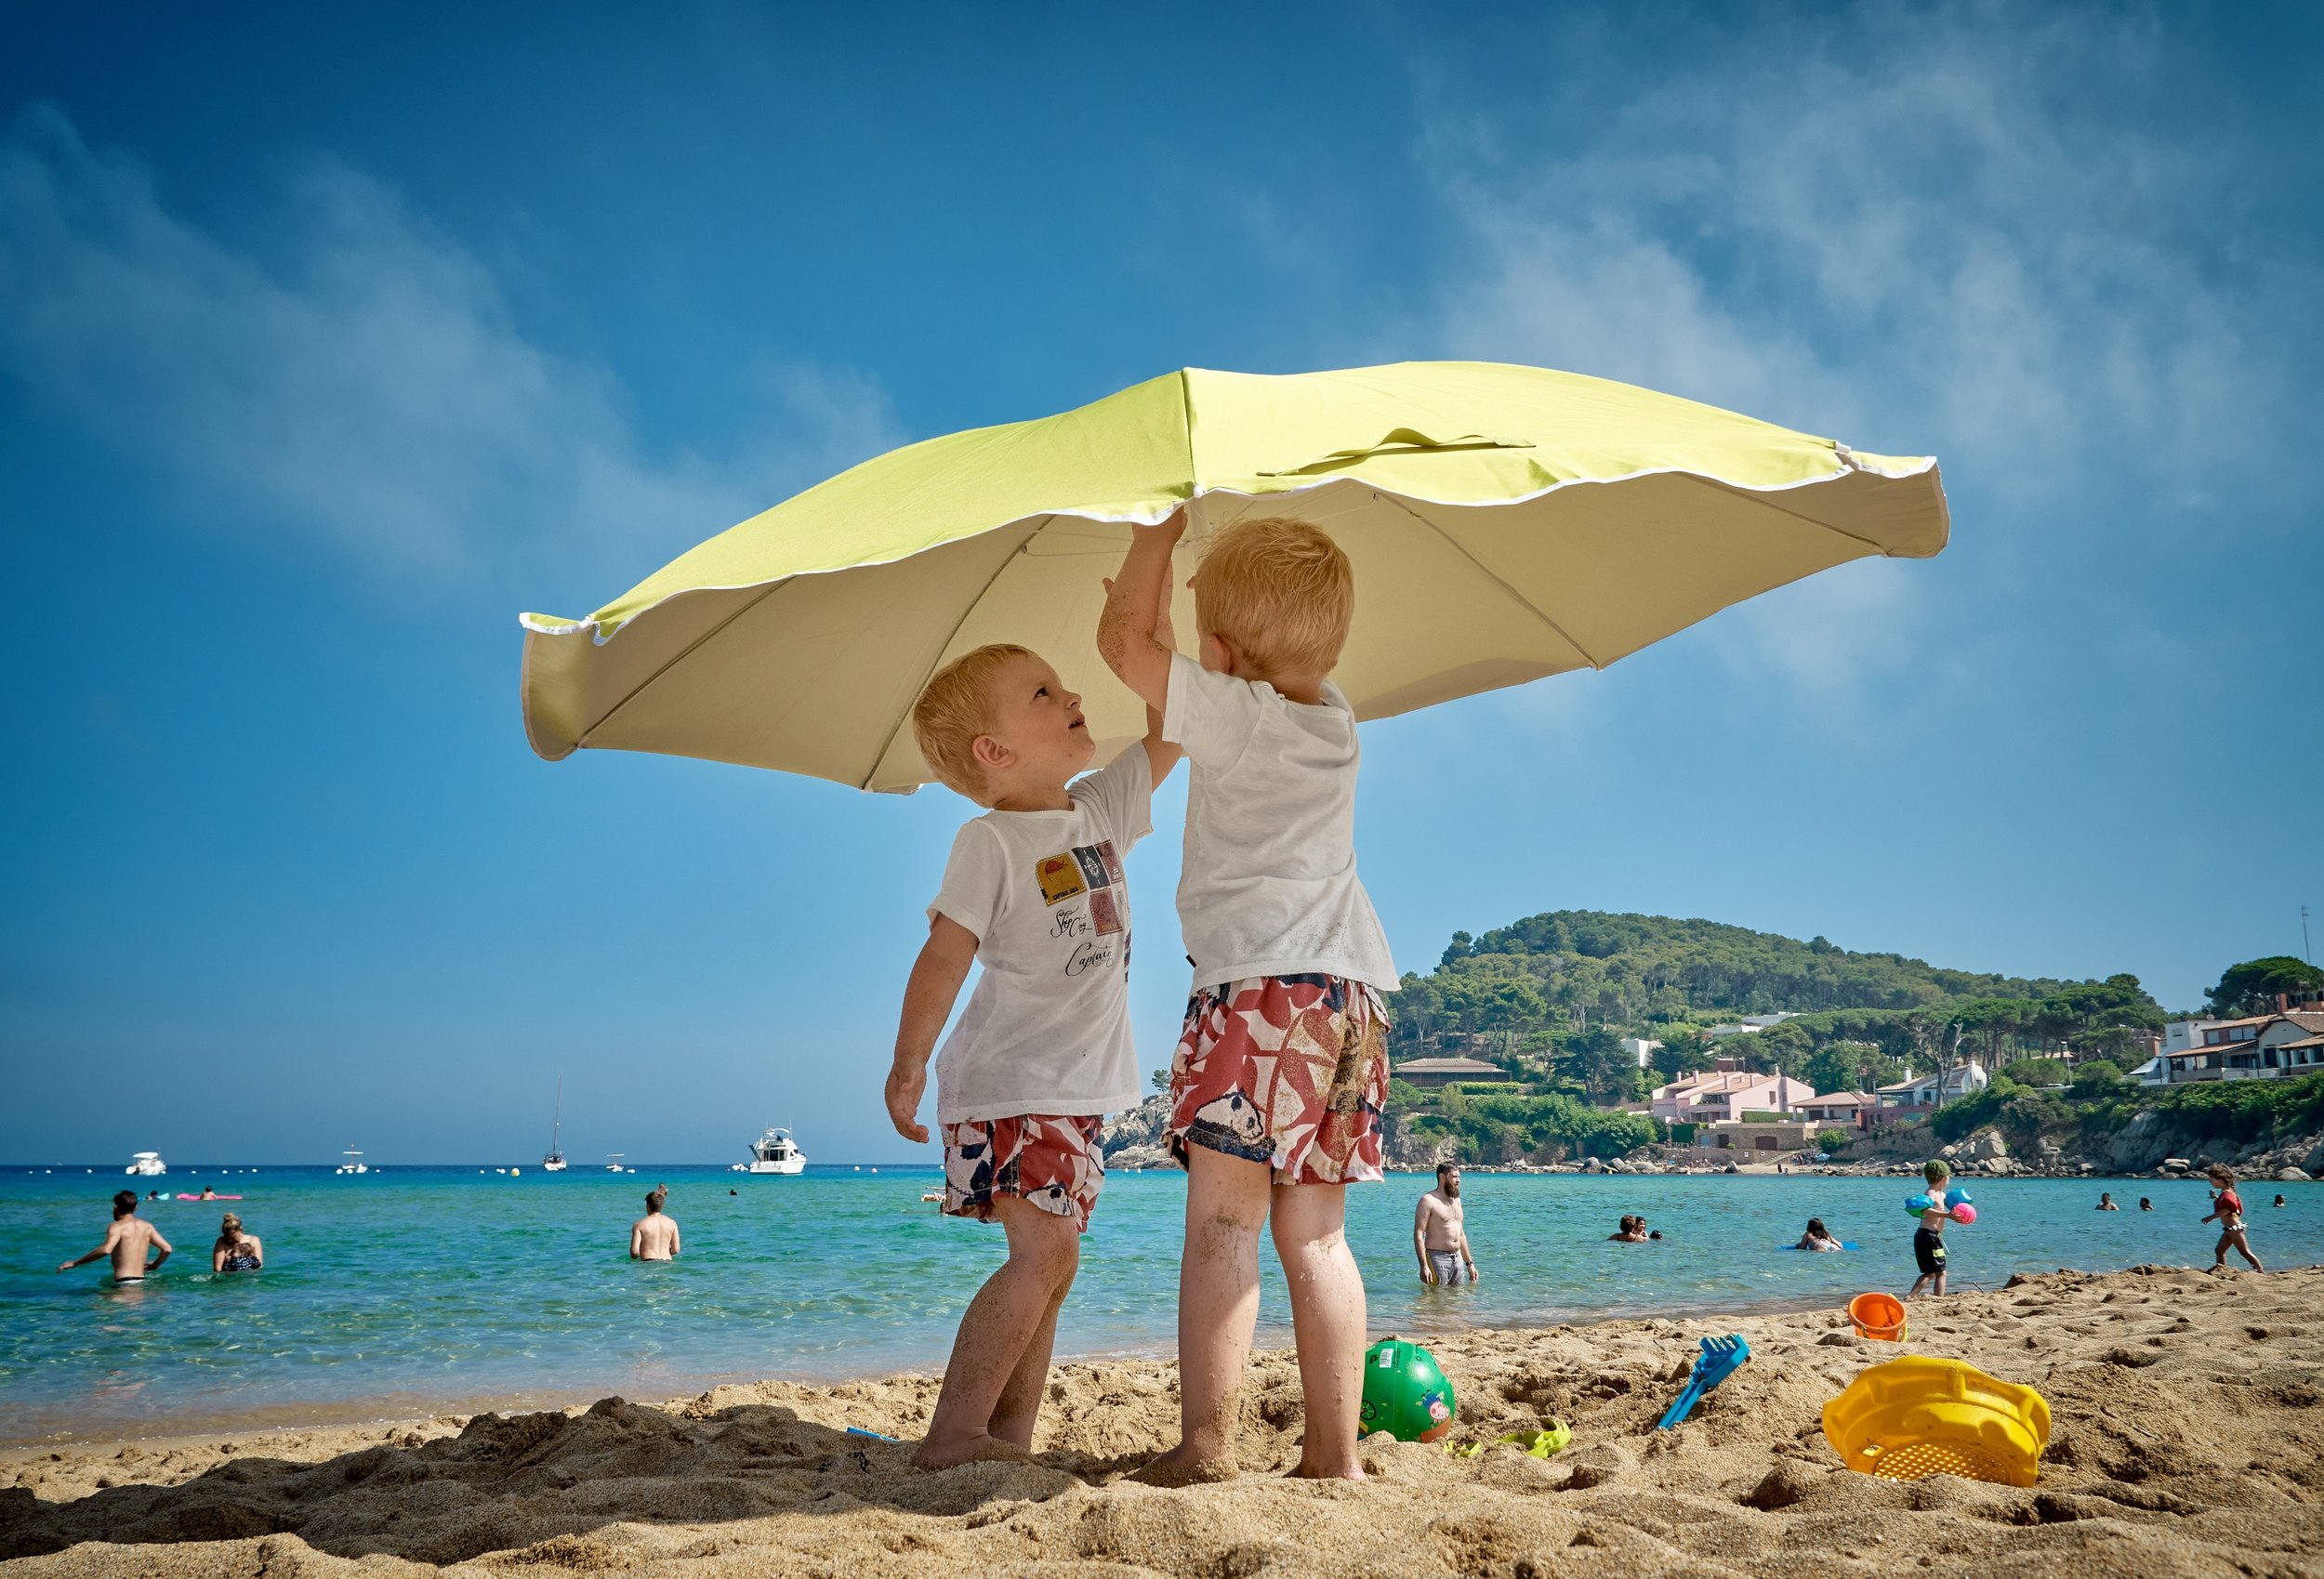 two children putting up umbrella on a sandy beach next to blue water